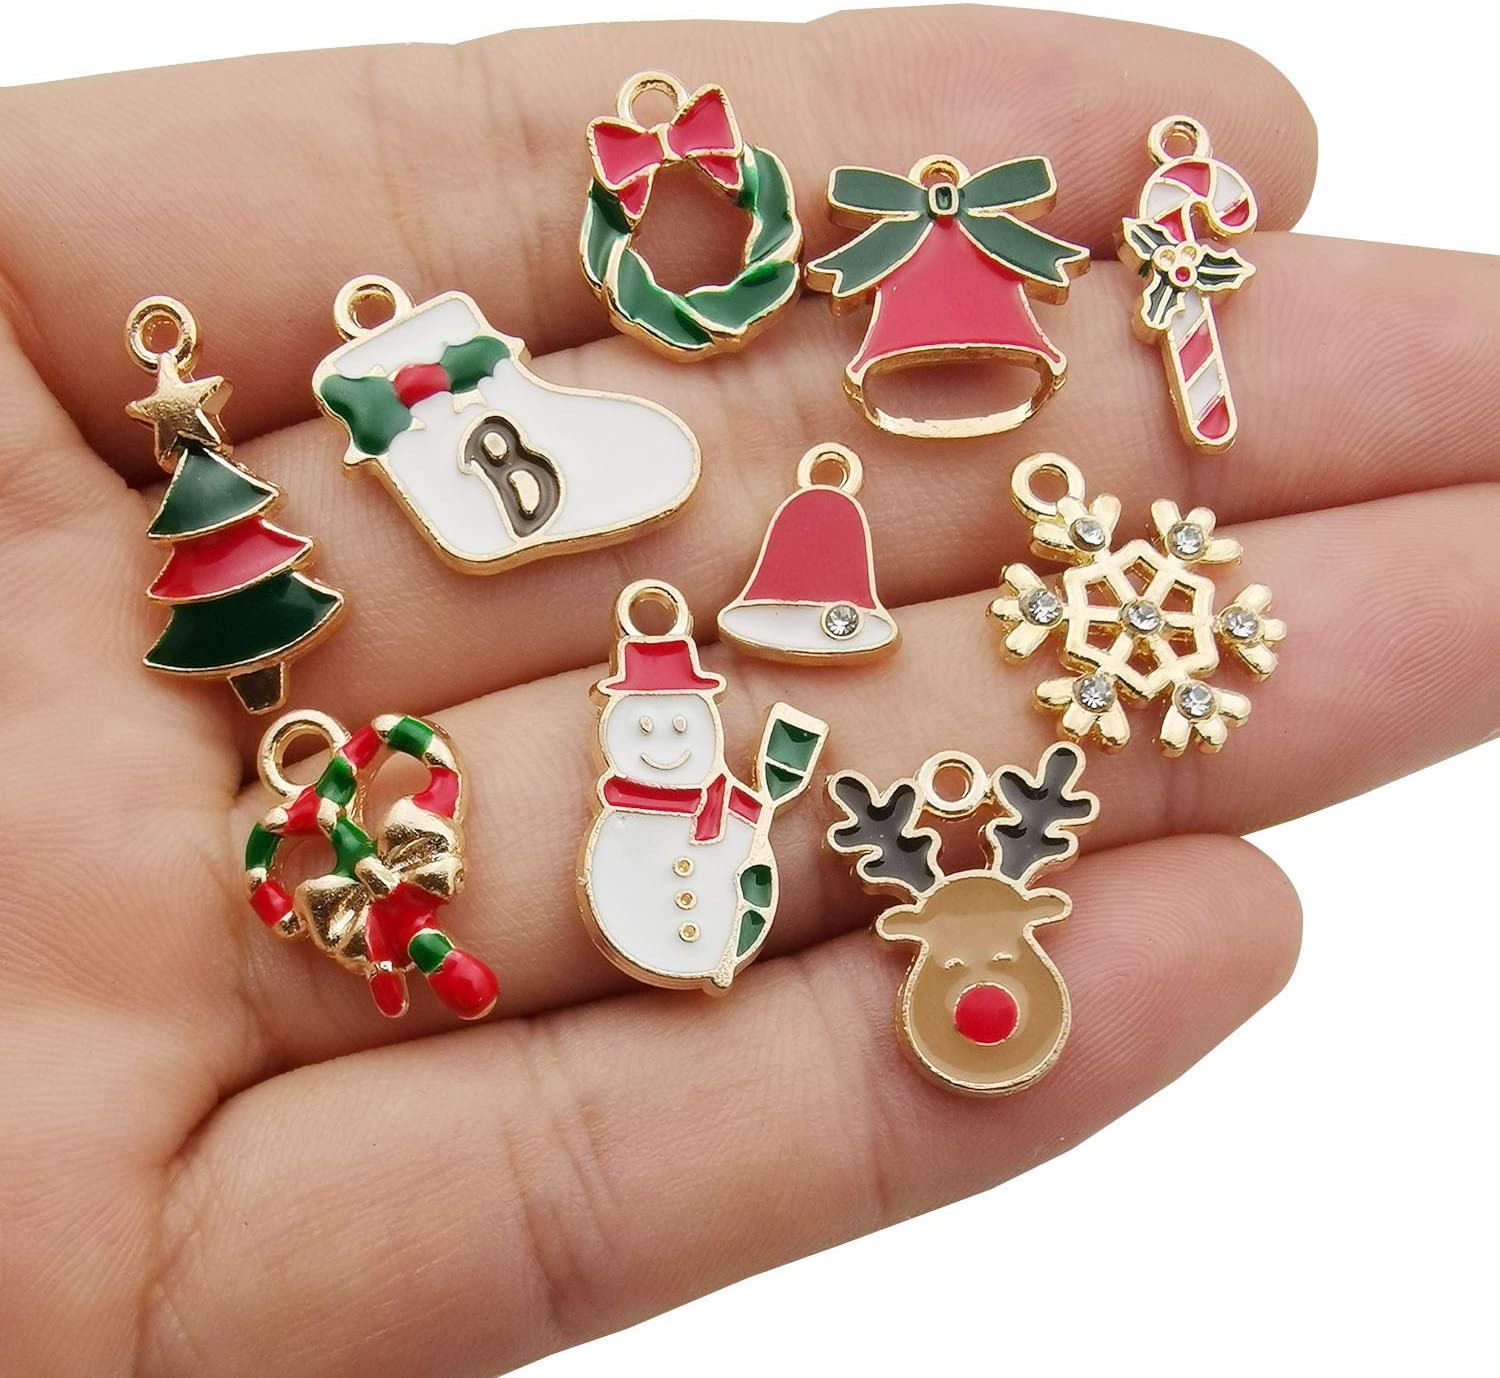 WOCRAFT 60pcs Assorted Gold Plated Enamel Christmas Charm Pendant for DIY Jewelry Making Necklace Bracelet Earring DIY Jewelry Accessories Charms M346